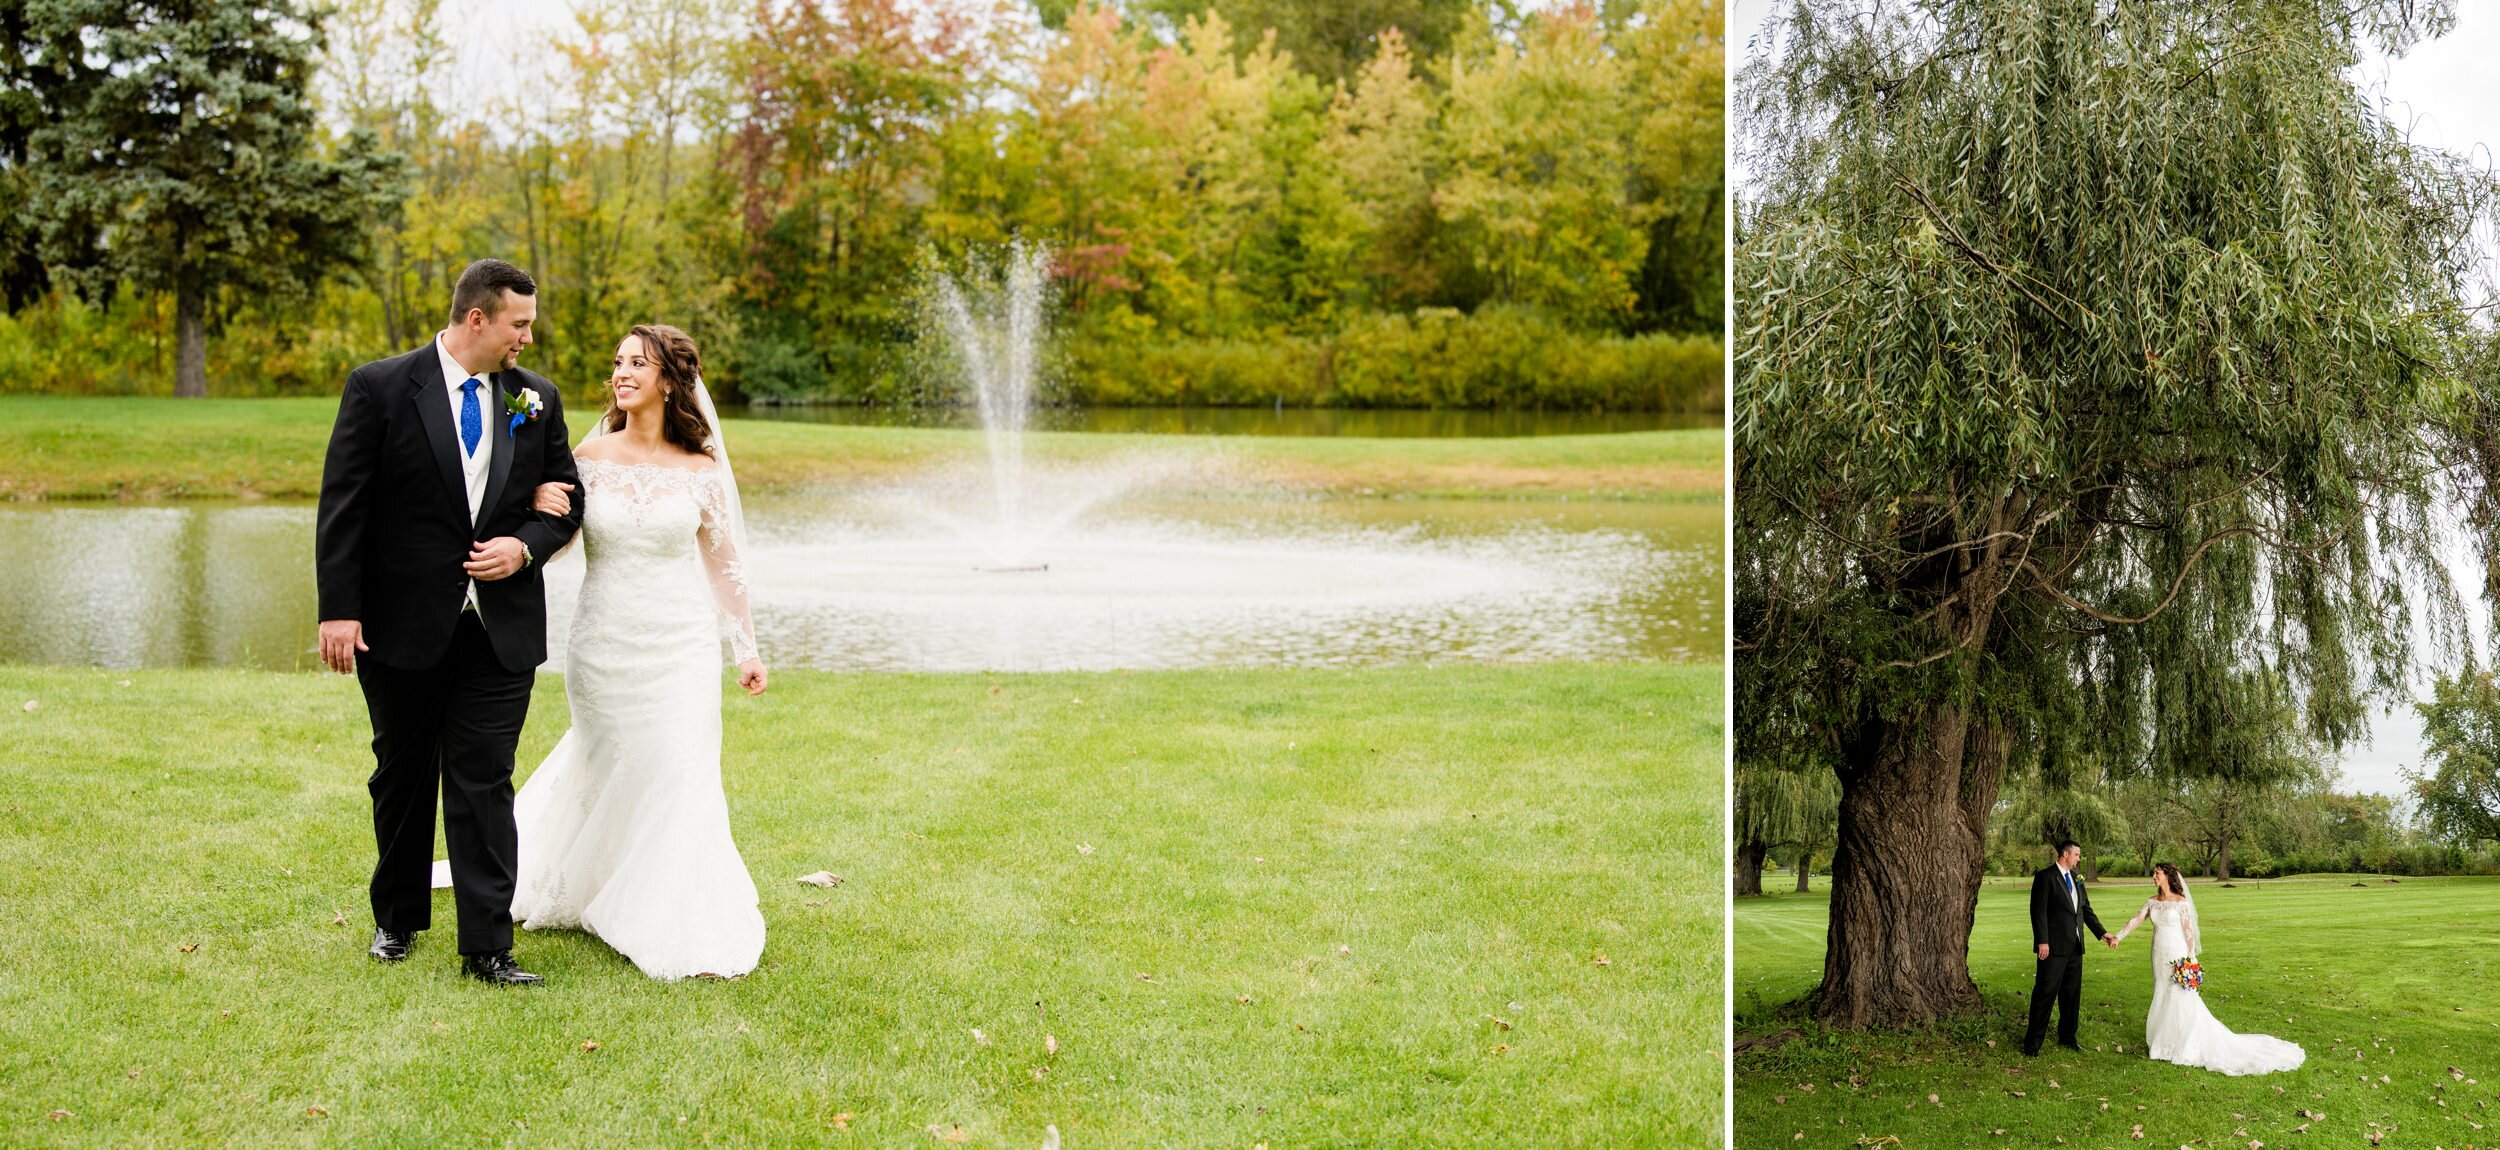 The lovely fountain and tall will trees of Wicker Park at a Fall wedding.